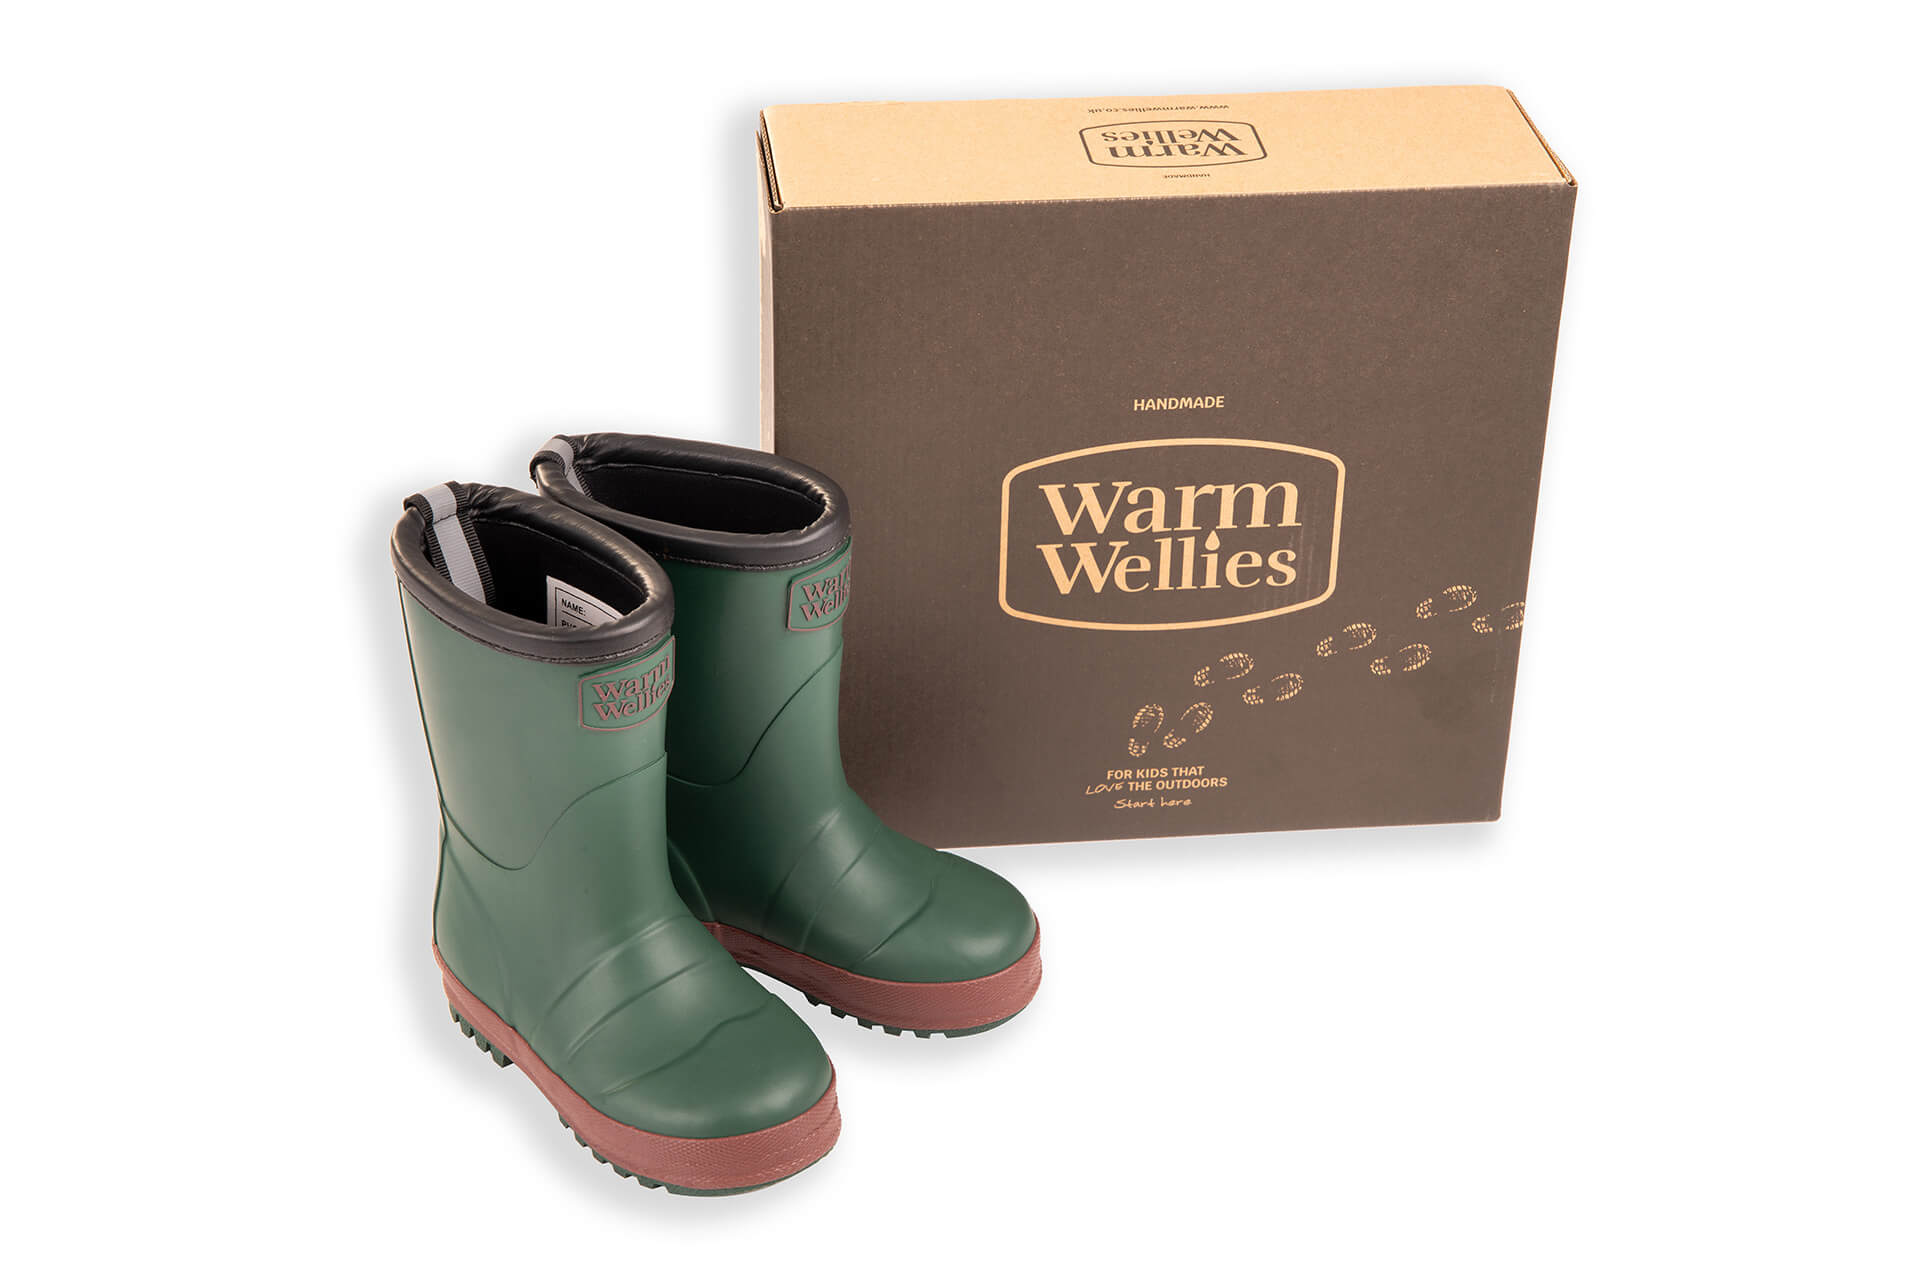 Why are neoprene lined wellies warmer?